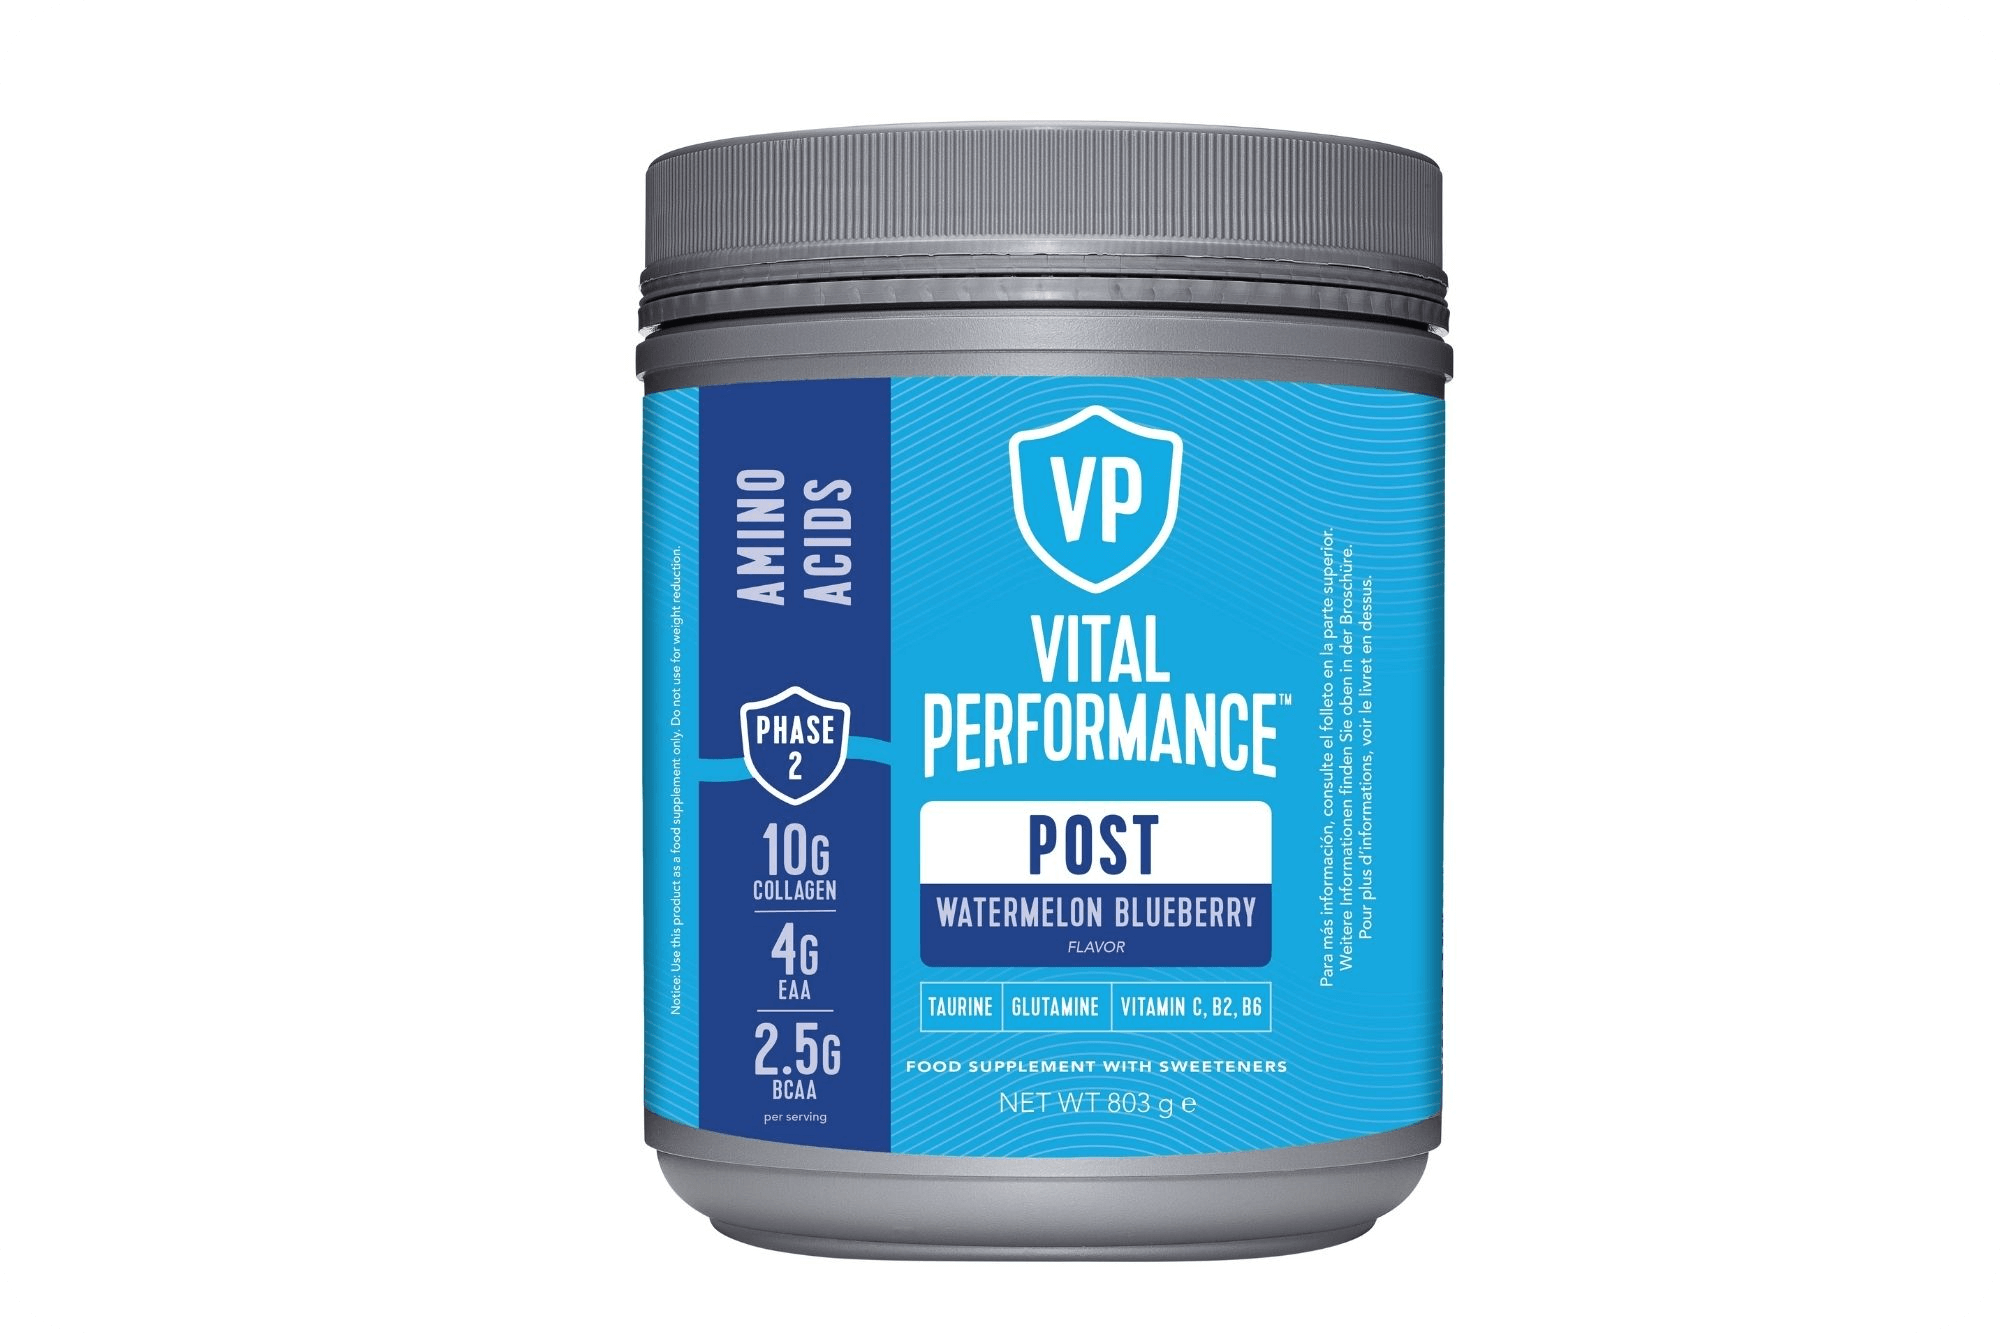 Try Vital Performance Post, Watermelon Blueberry